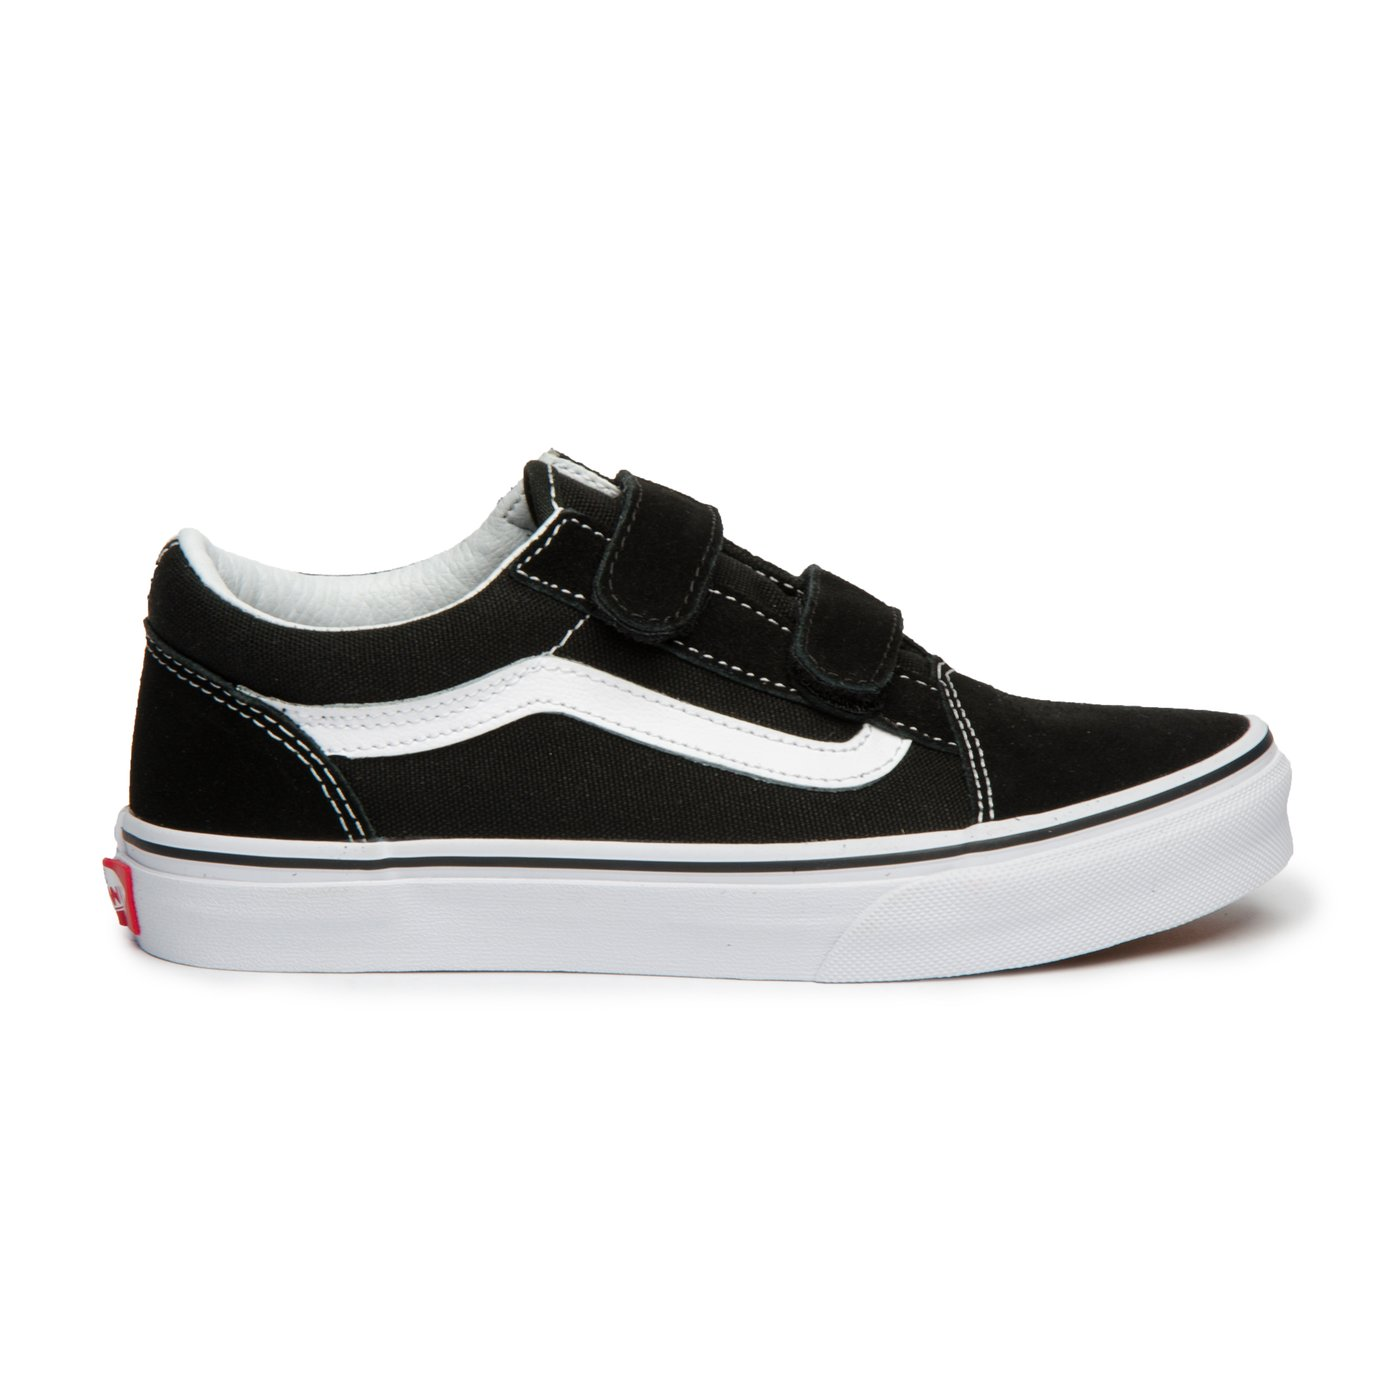 Кеди дитячі Vans OLD SKOOL